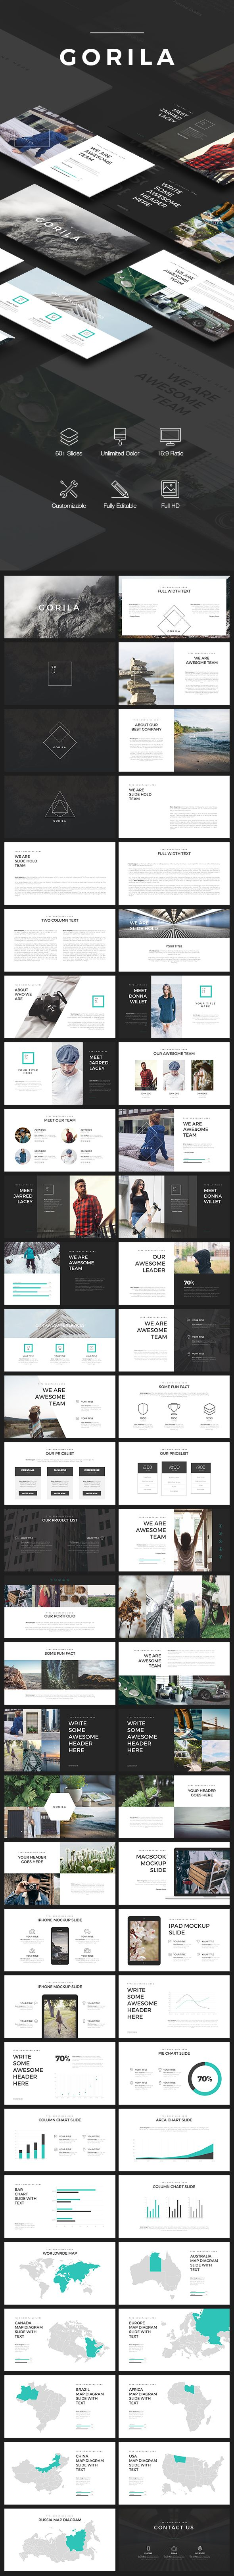 GORILA - PowerPoint Template (PowerPoint Templates)